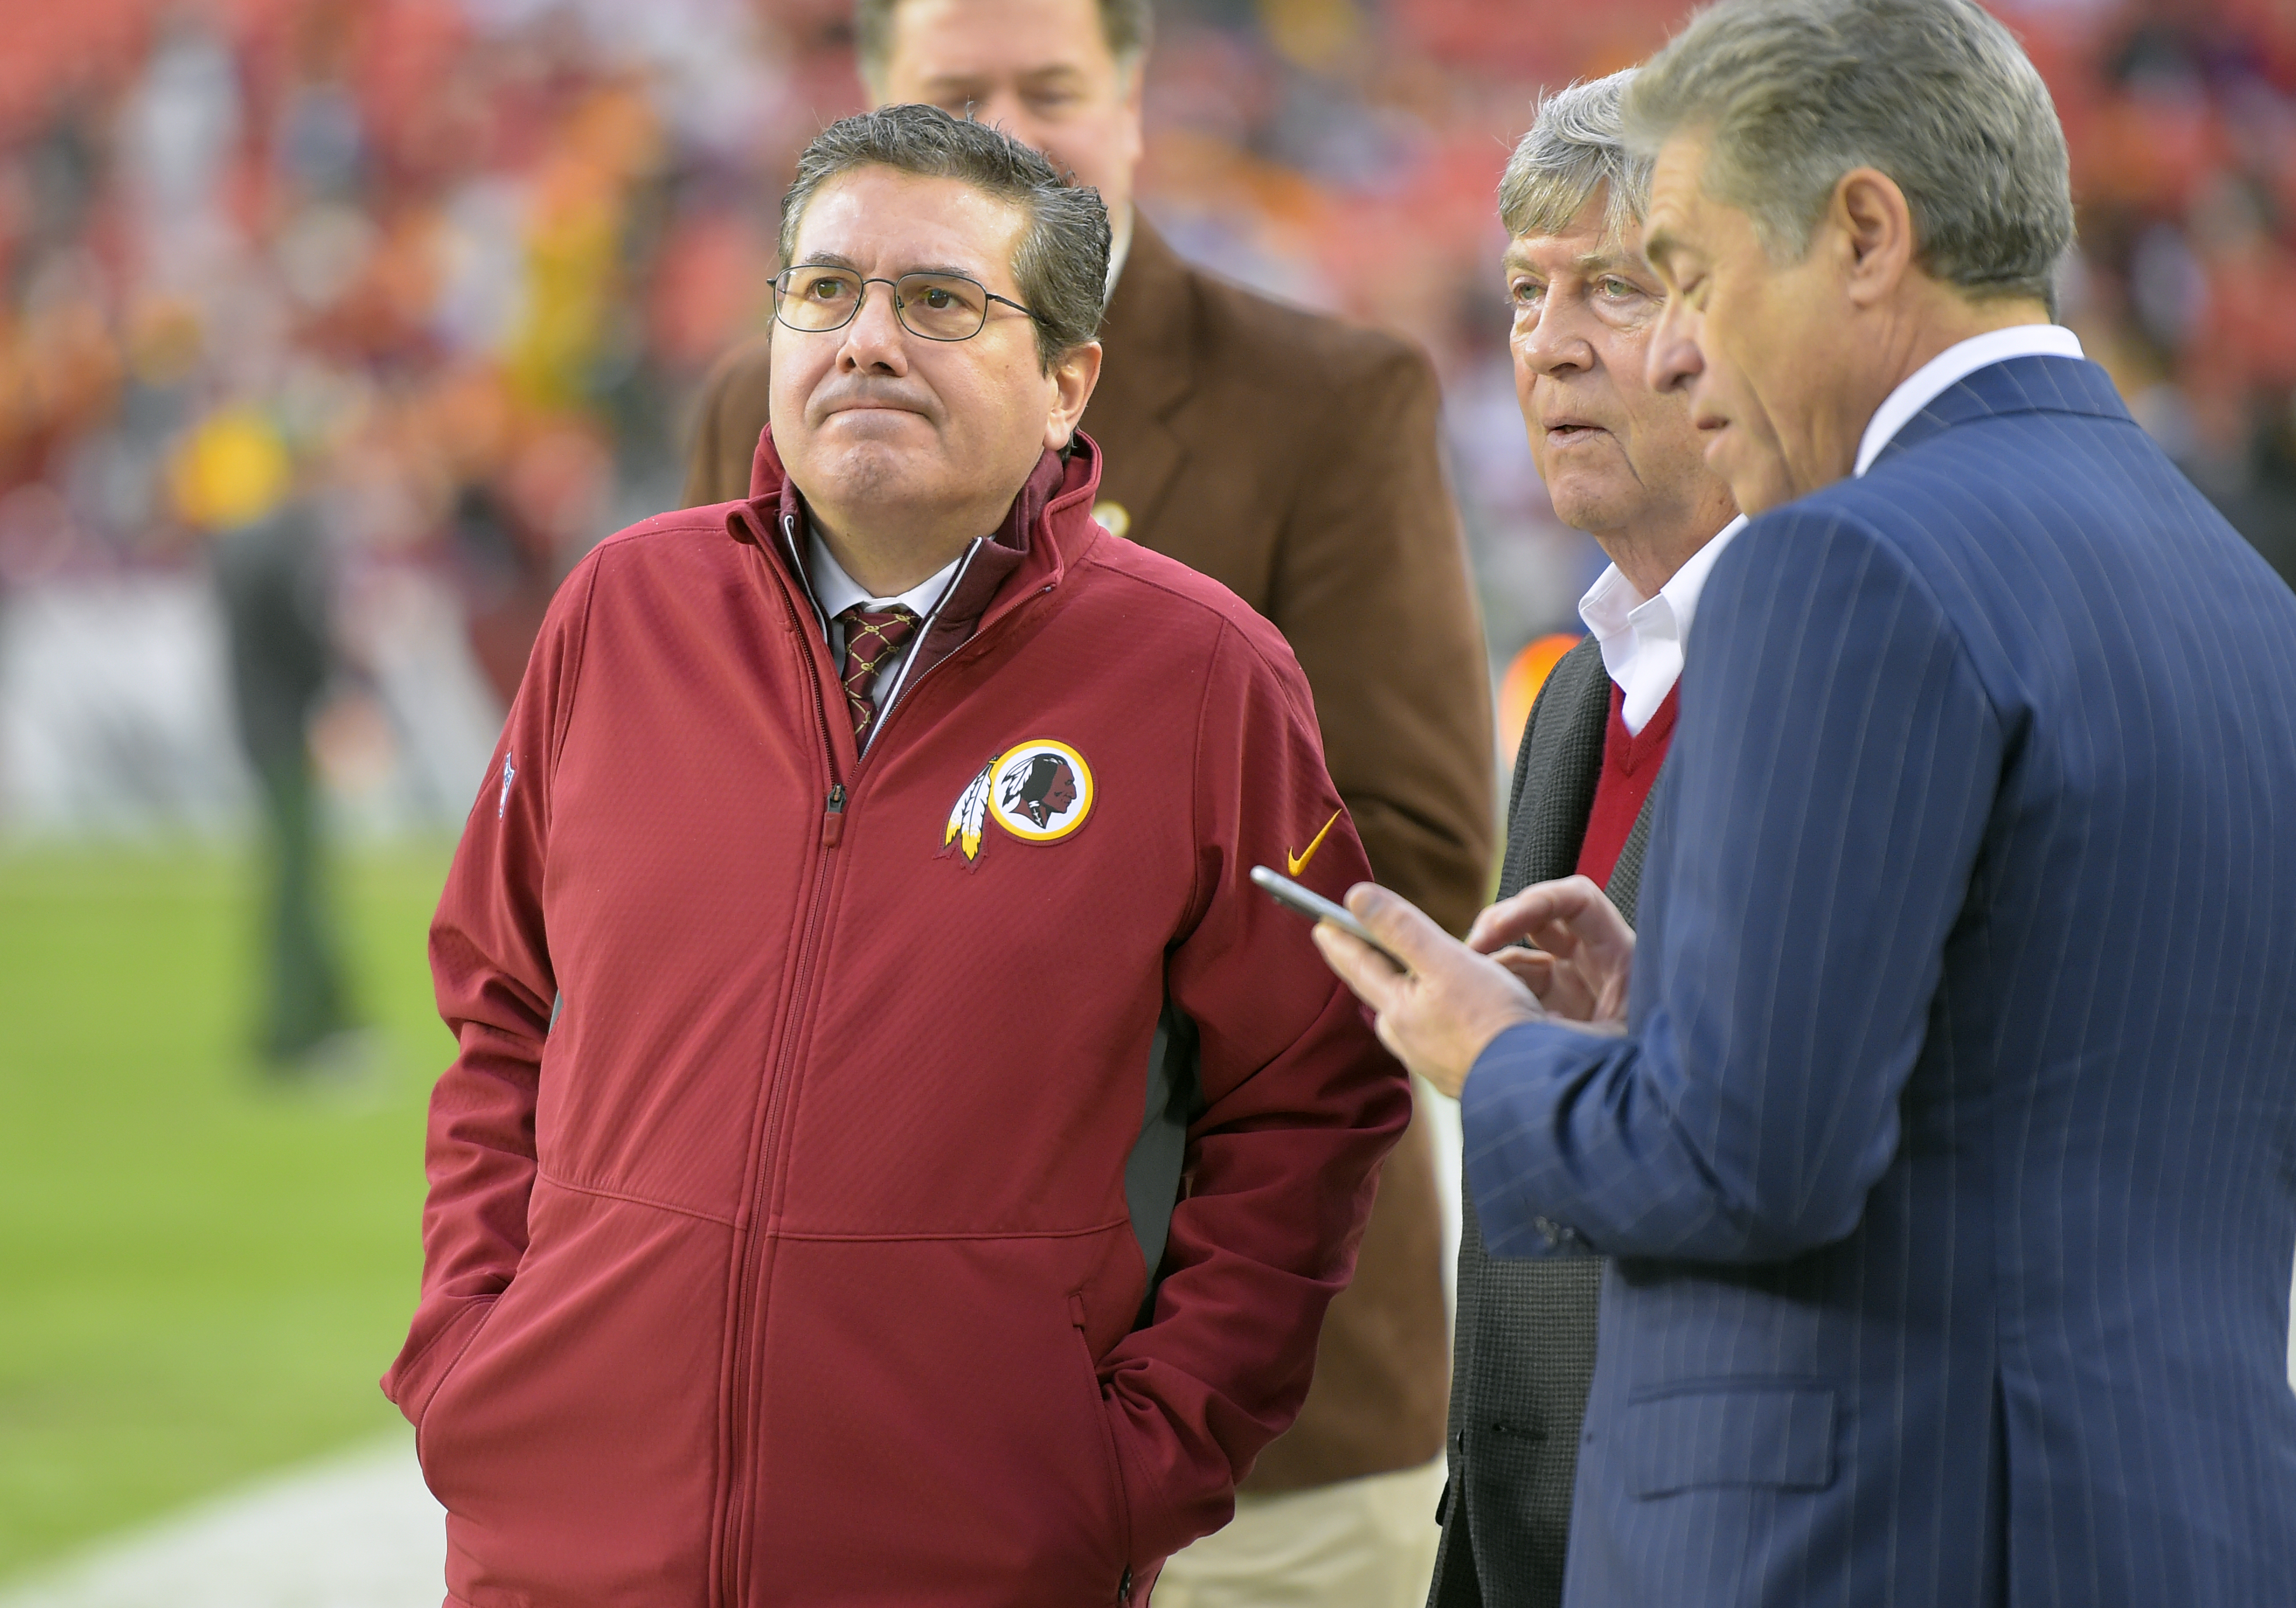 Washington Redskins play the Green Bay Packers